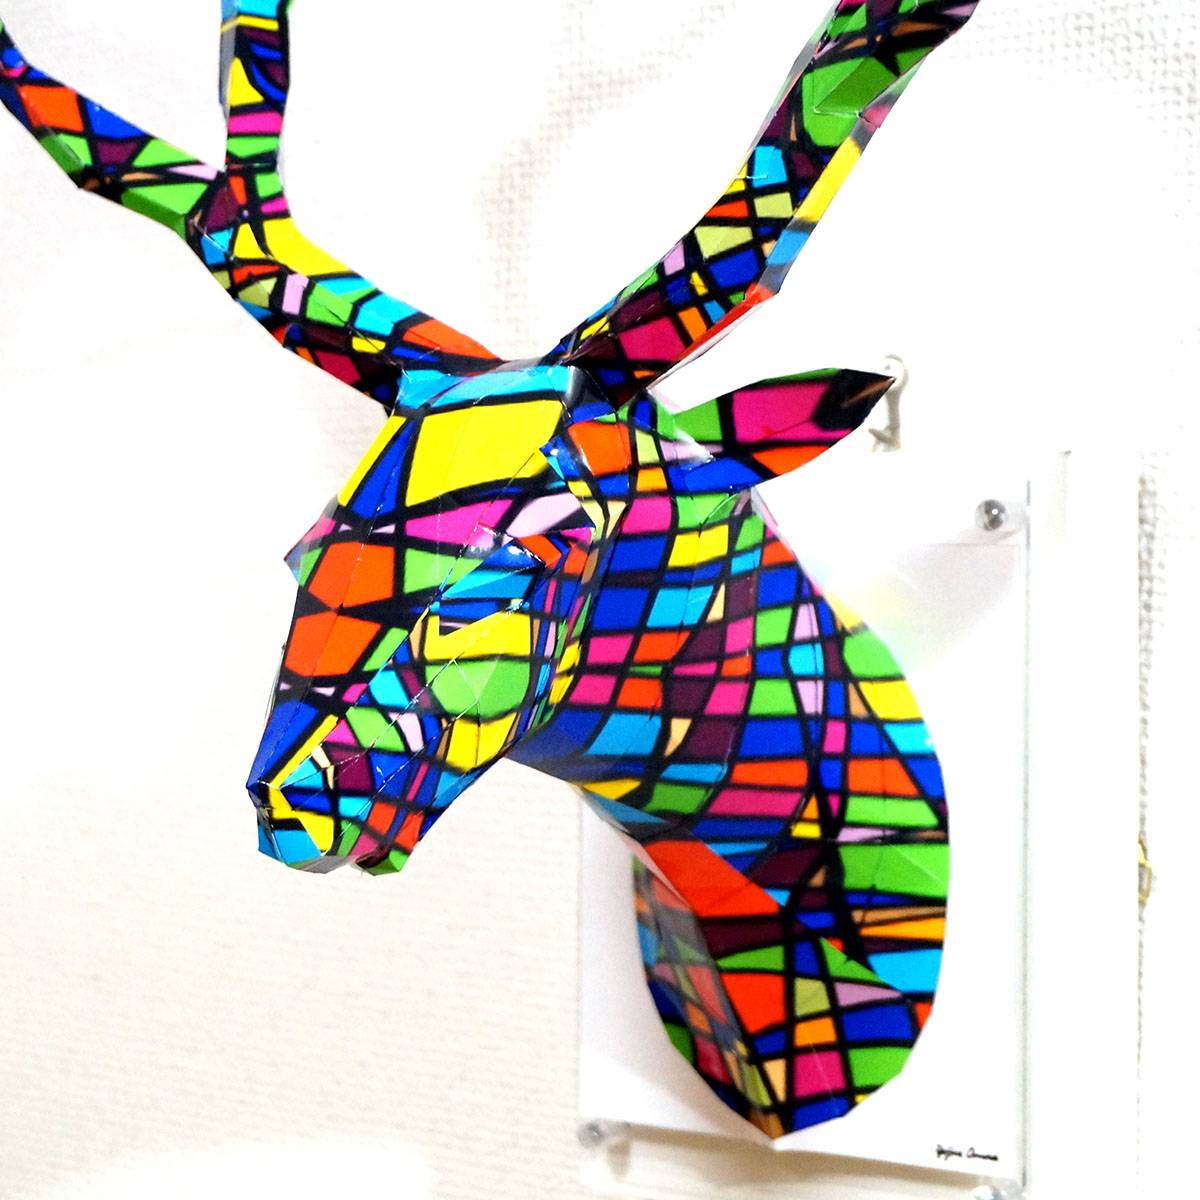 Deer of the polychromatic ED:4/10